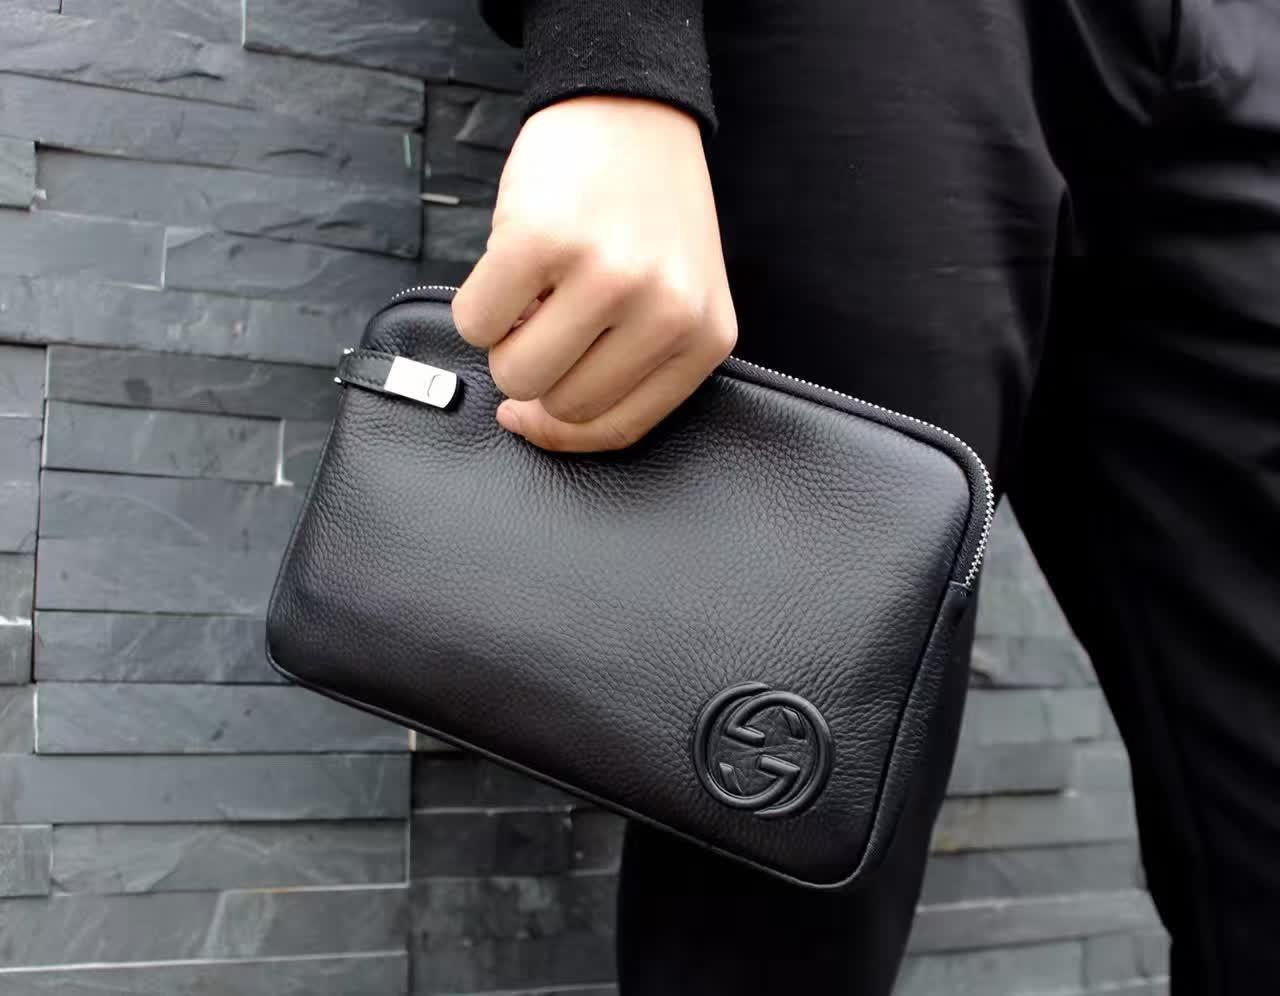 Gucci 118-5 Men Leather Clutch Bag Black